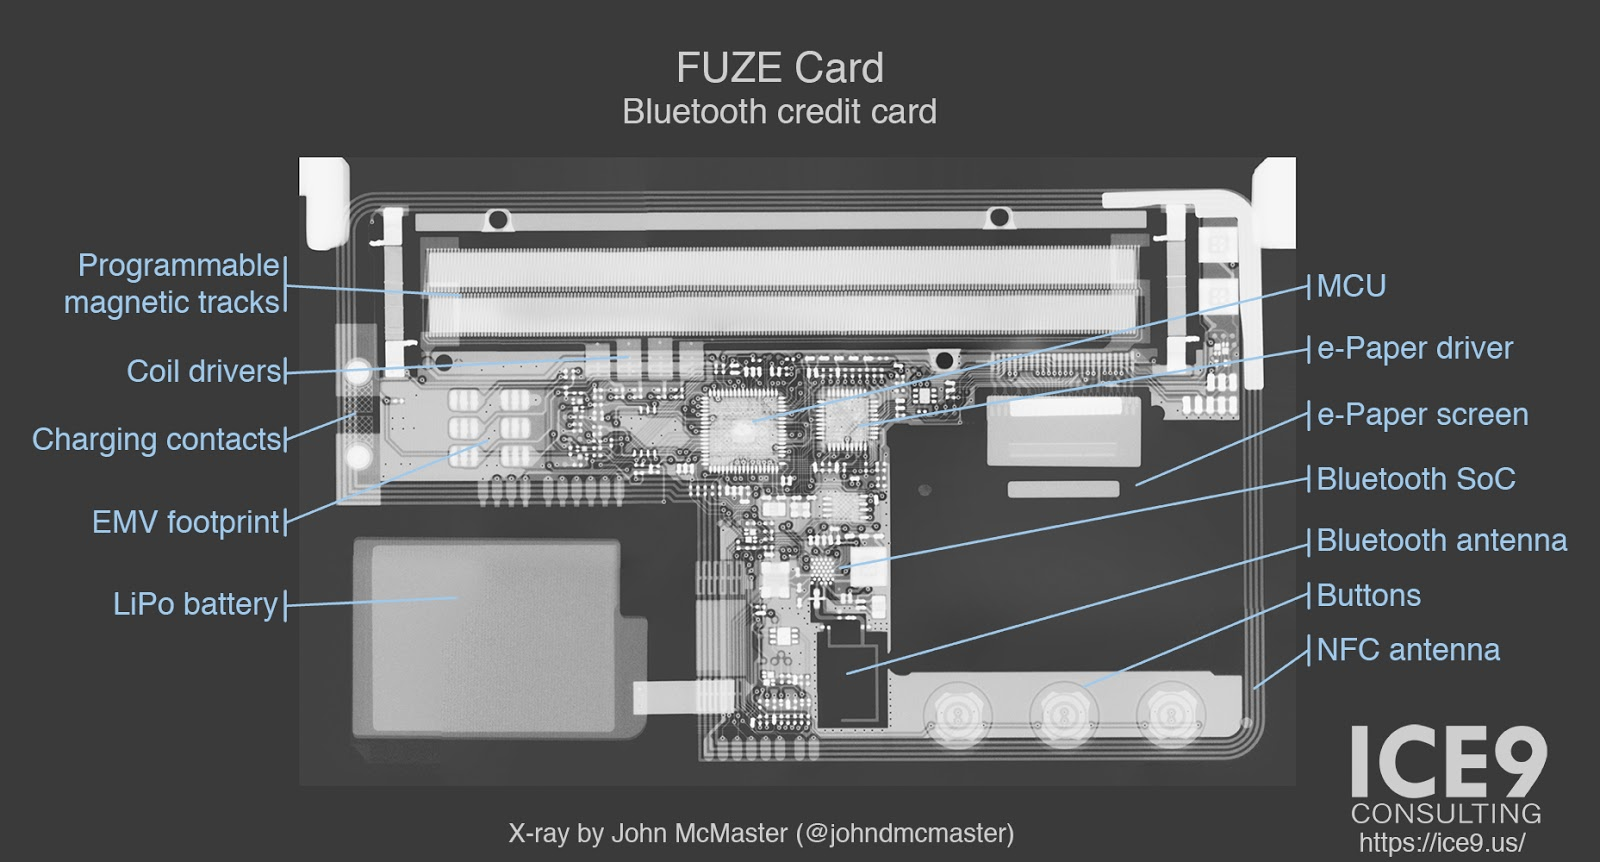 ICE9 Blog: Stealing Credit Cards from FUZE via Bluetooth